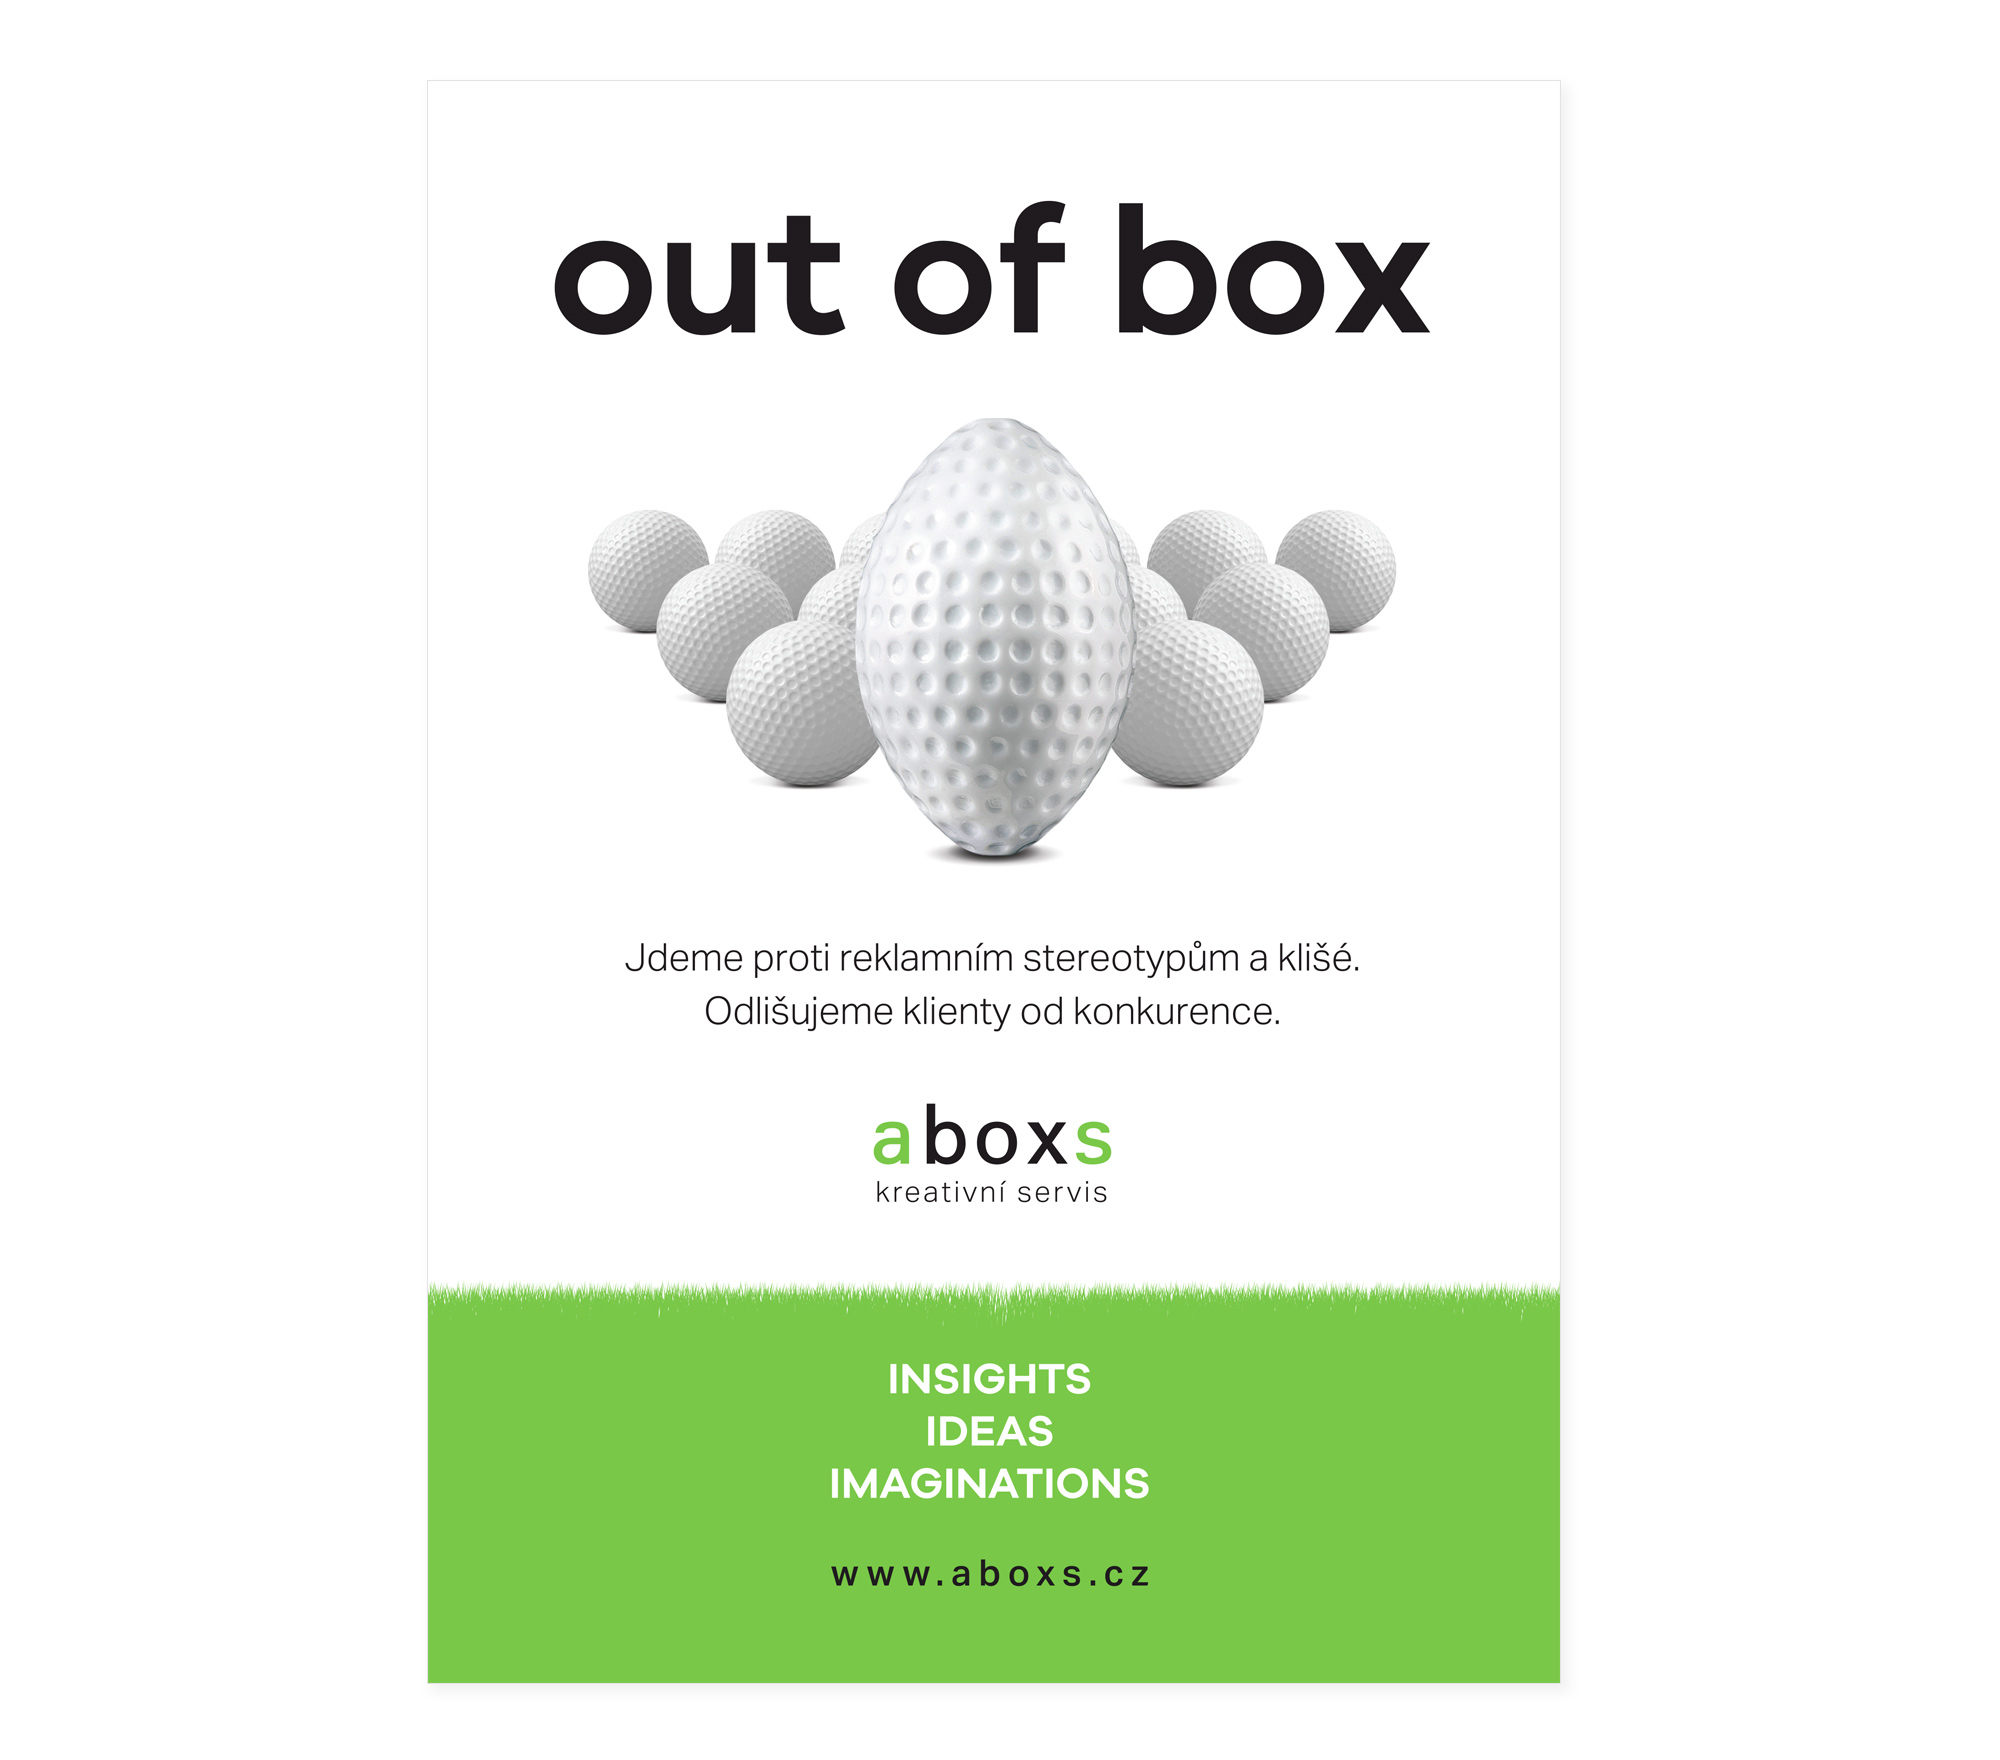 Aboxs - out of box